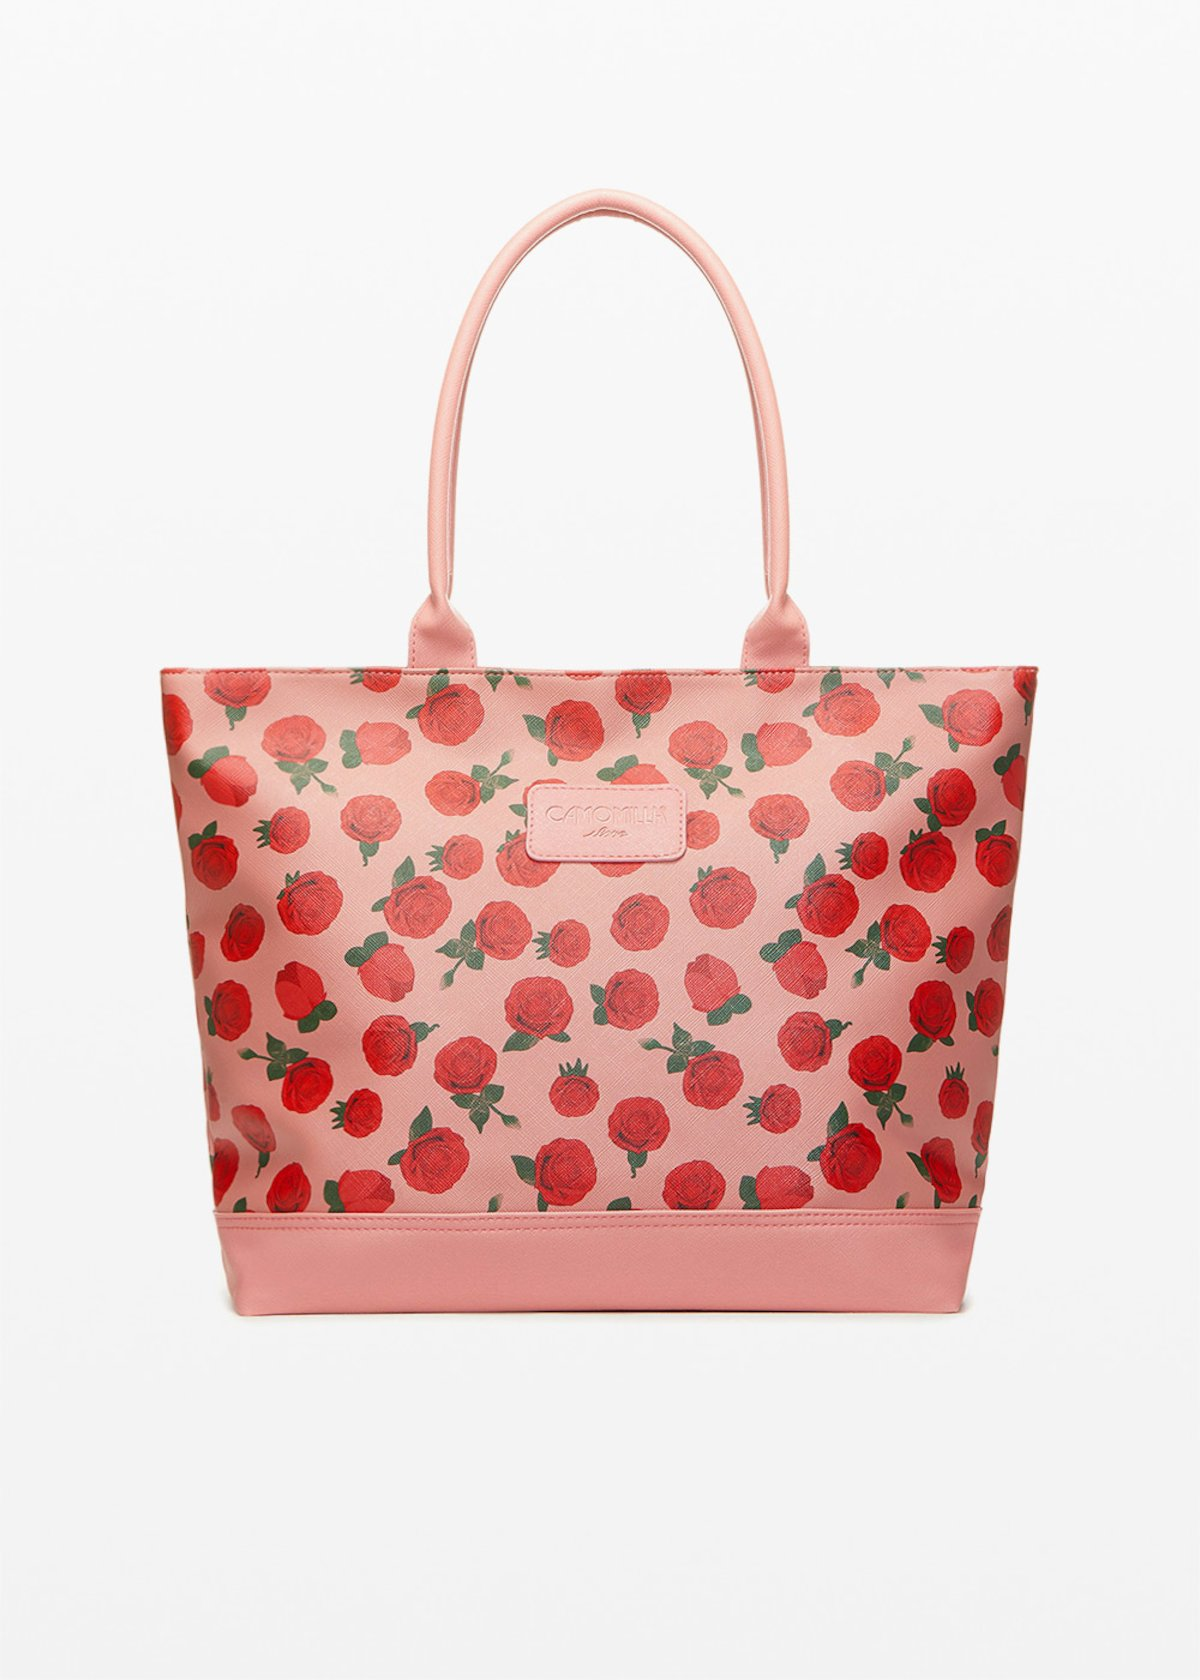 Shopping bag Trendros6 in ecopelle con stampa rose - Calcite Fantasia - Donna - Immagine categoria